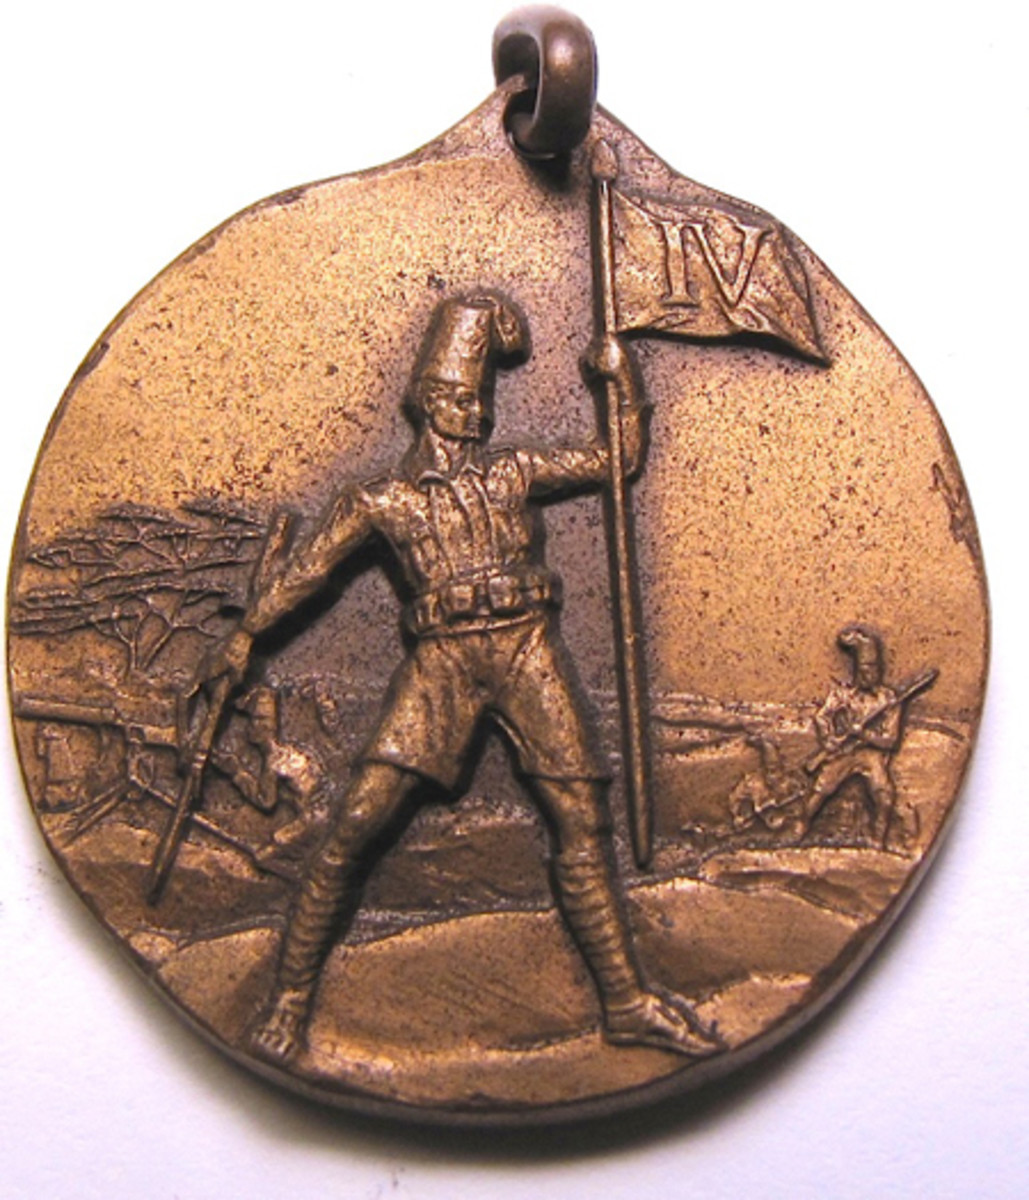 Italian colonial medal issued to the Battalian Arabo Somalo, East Africa, ex Gene Christian collection.